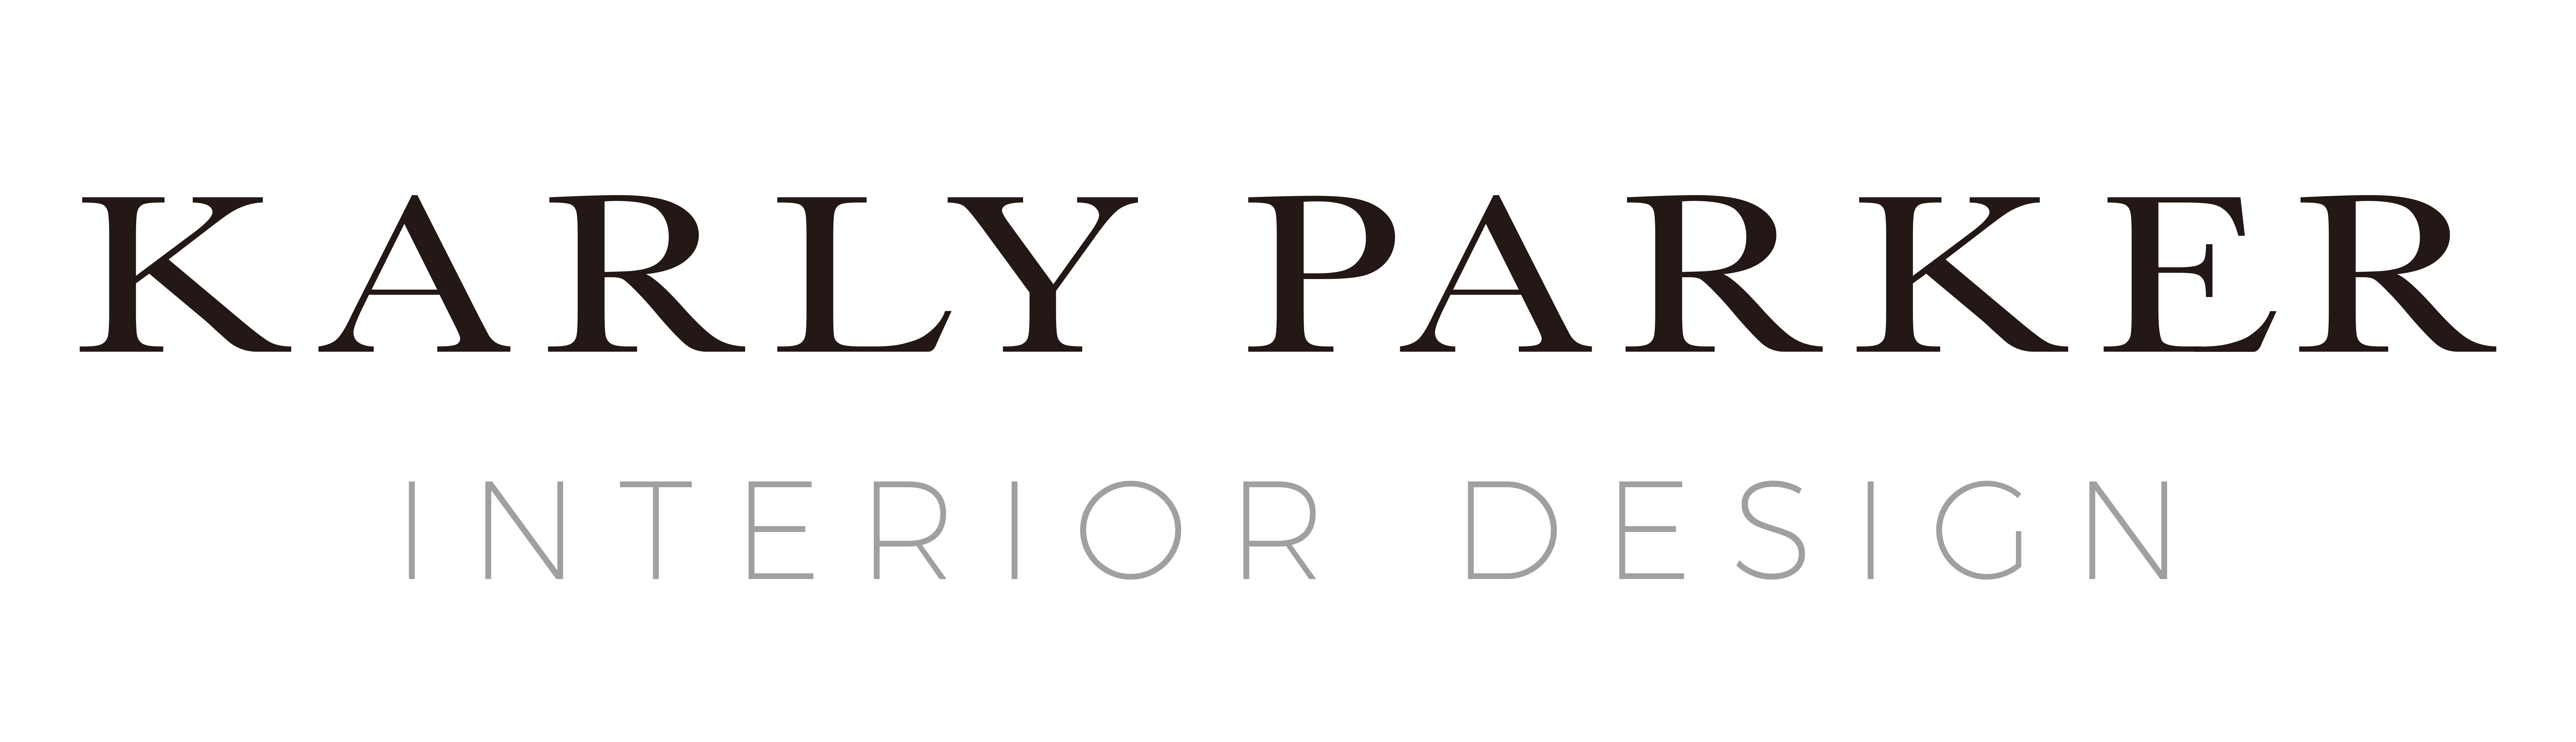 KarlyParker Interior Design